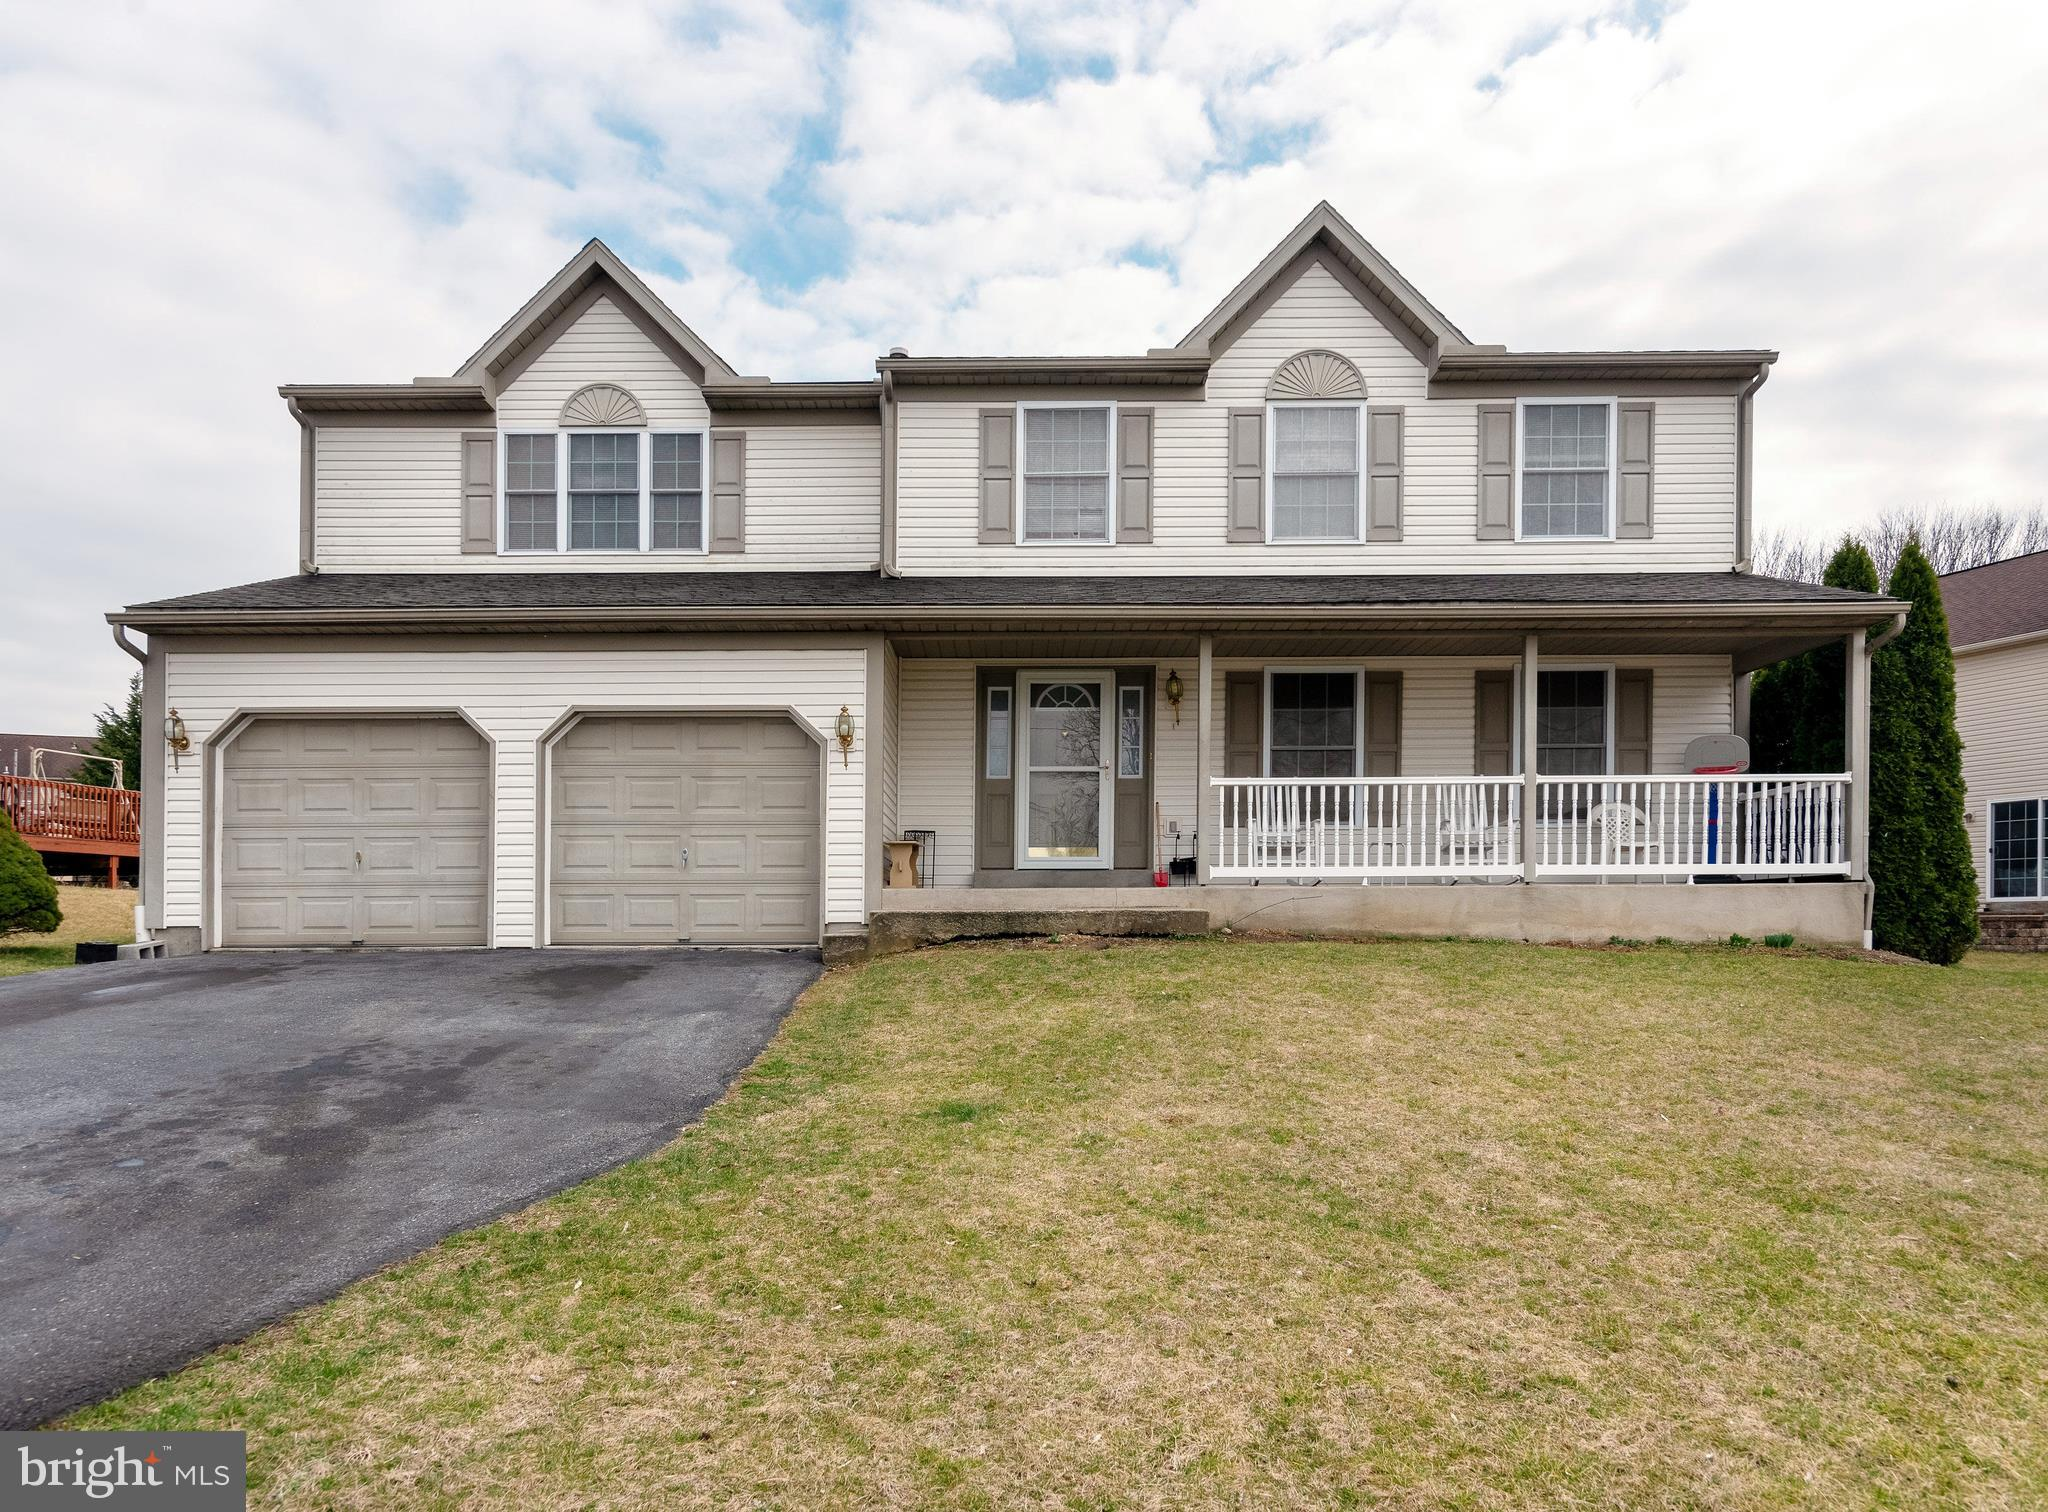 319 CRYSTAL ROCK ROAD, TEMPLE, PA 19560